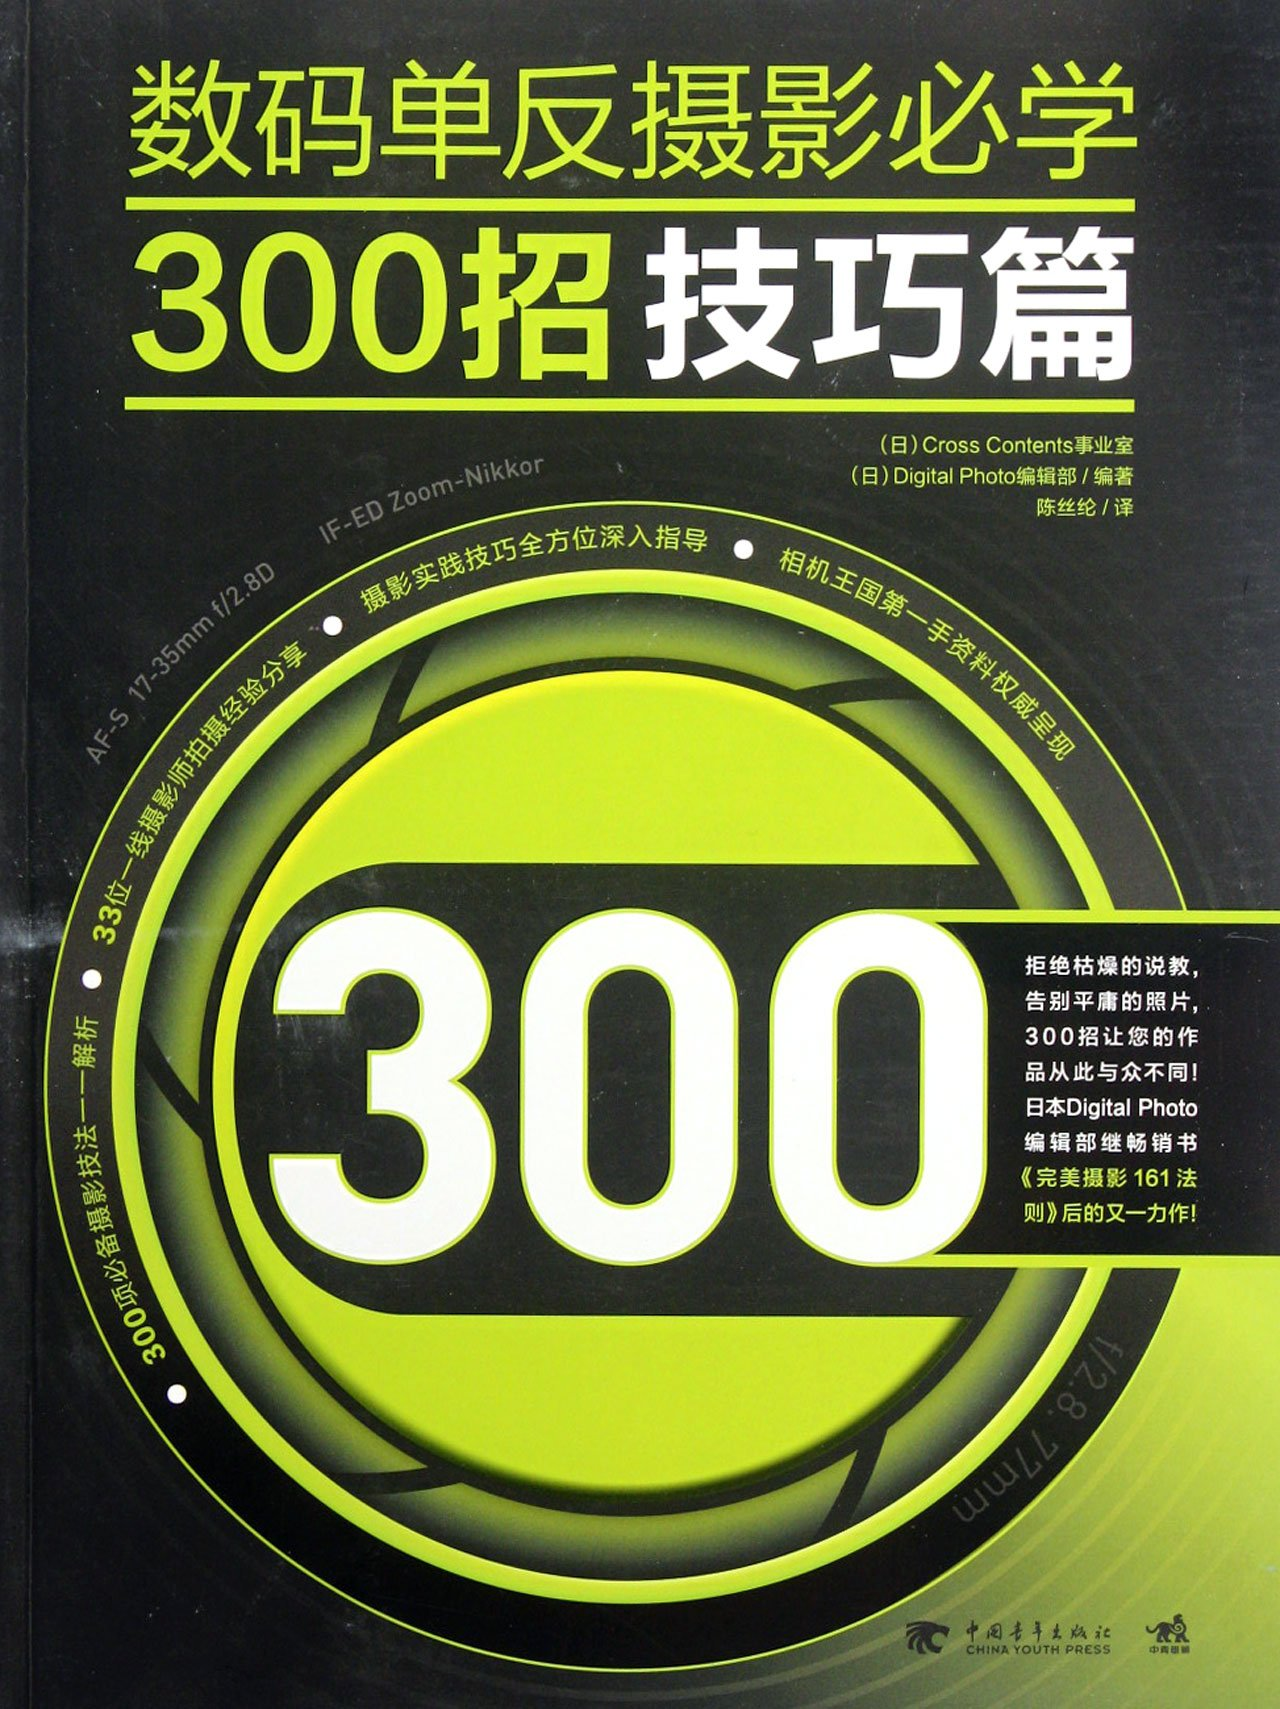 Download SKILLS - 300 Techniques for DSLR Photography (Chinese Edition) ebook